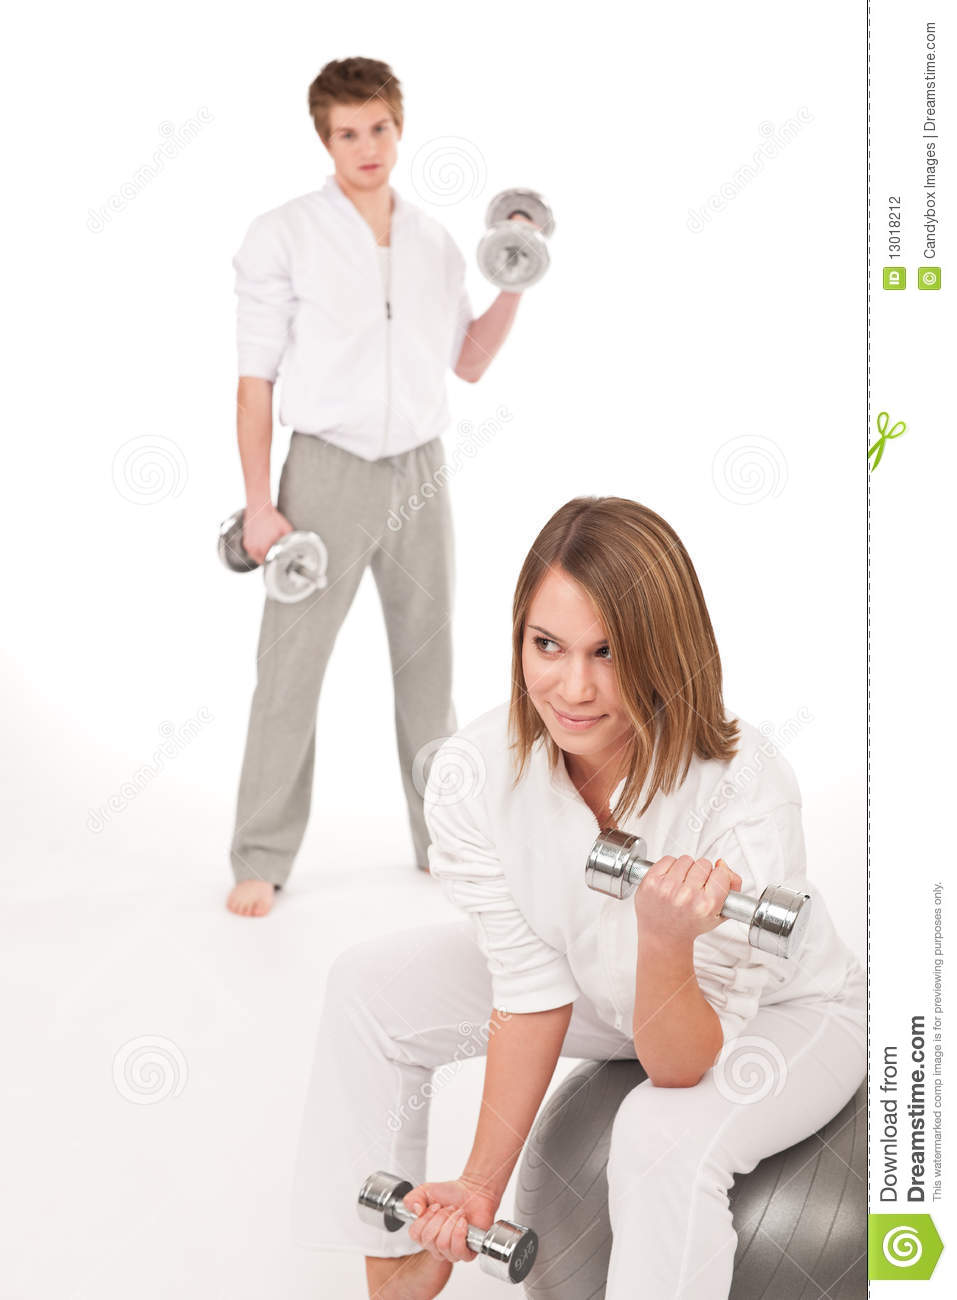 prepubescent strength training essay Prepubescent strength training strength training and prepubertal youth the value place on the importance of net profit in professional sports has frivol away an all-time high.